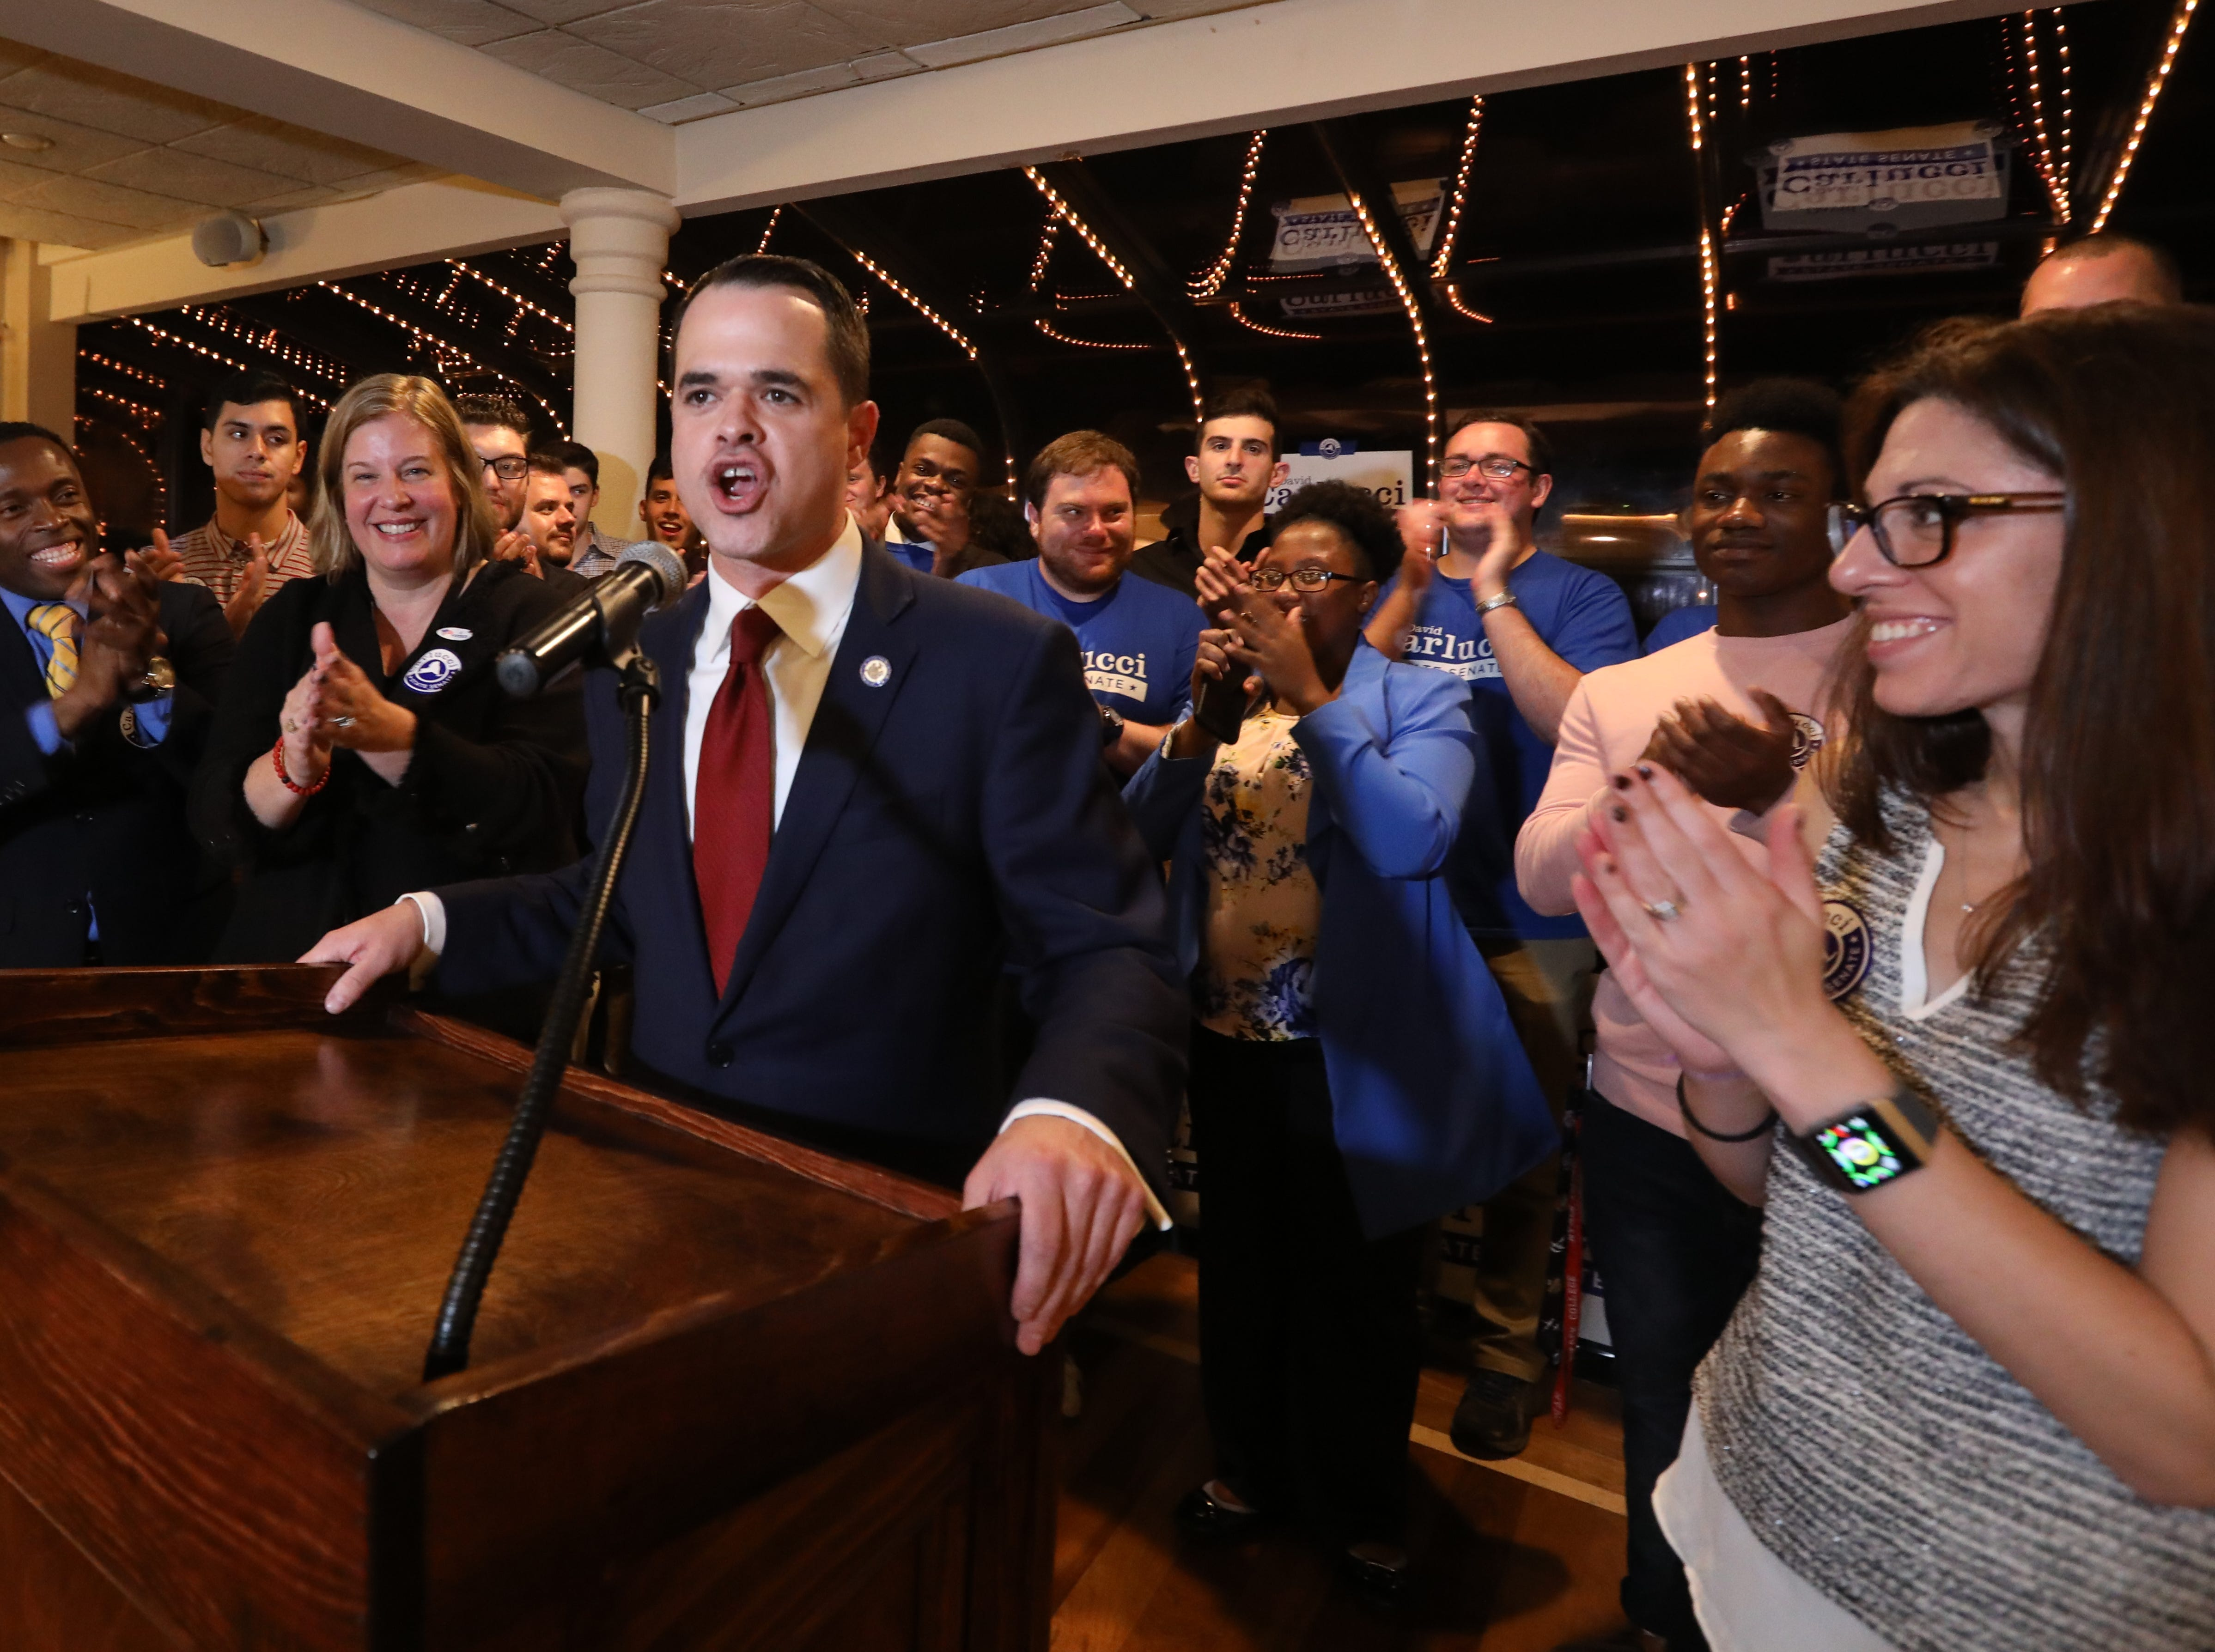 State Sen. David Carlucci speaks after winning re-election at Casa Mia in Blauvelt Nov. 6, 2018.